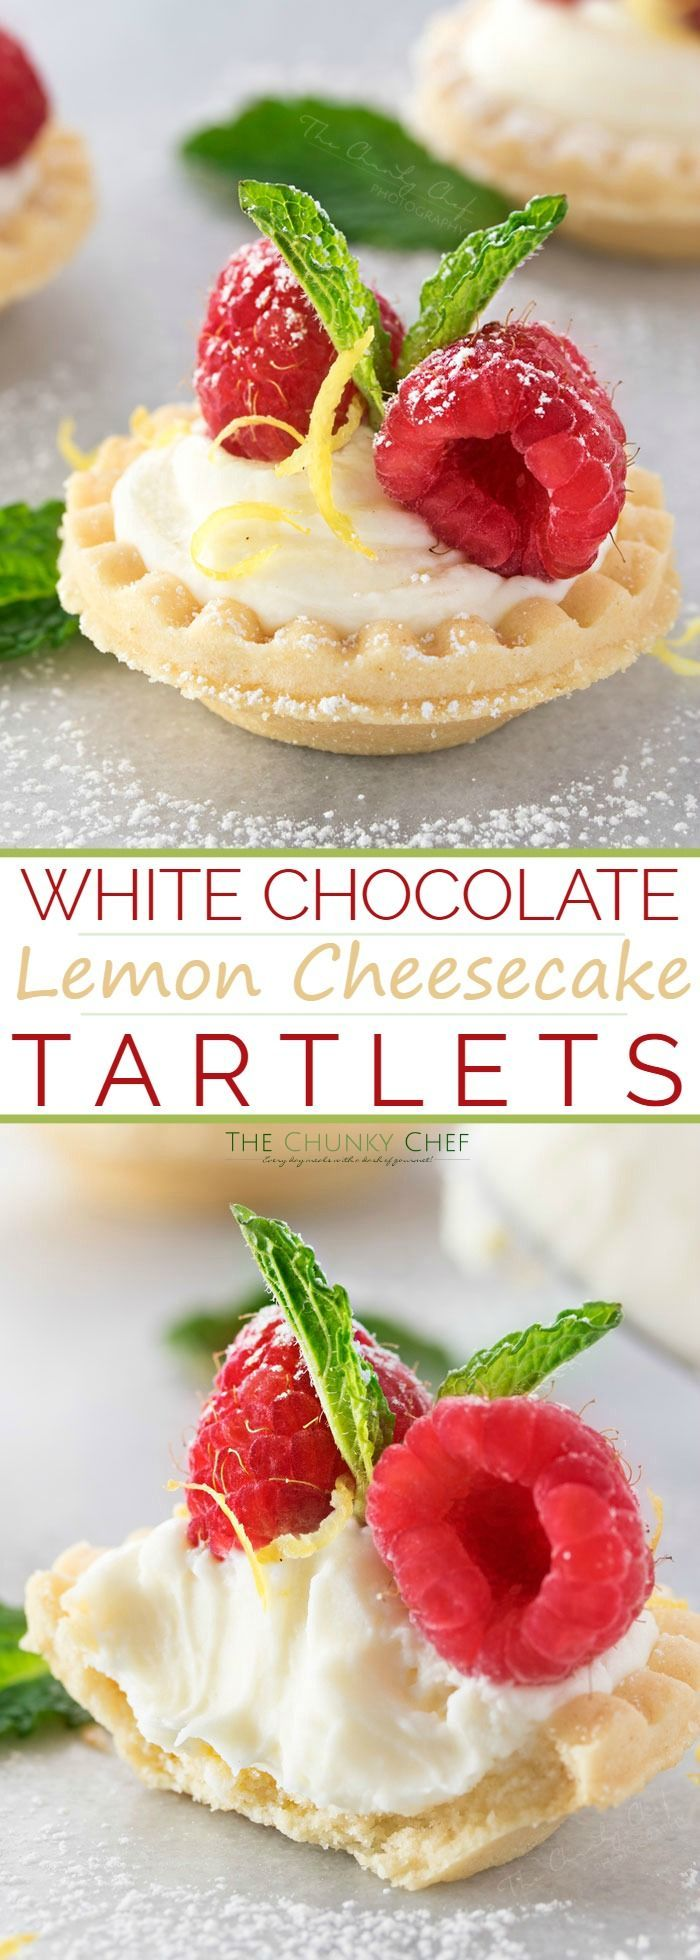 Mini No Bake White Chocolate Lemon Cheesecake Tarts | Creamy no bake white chocolate lemon cheesecake tarts, topped with your favorite fresh fruit, mint, and a dusting of powdered sugar. Impressive and easy! | http://thechunkychef.com